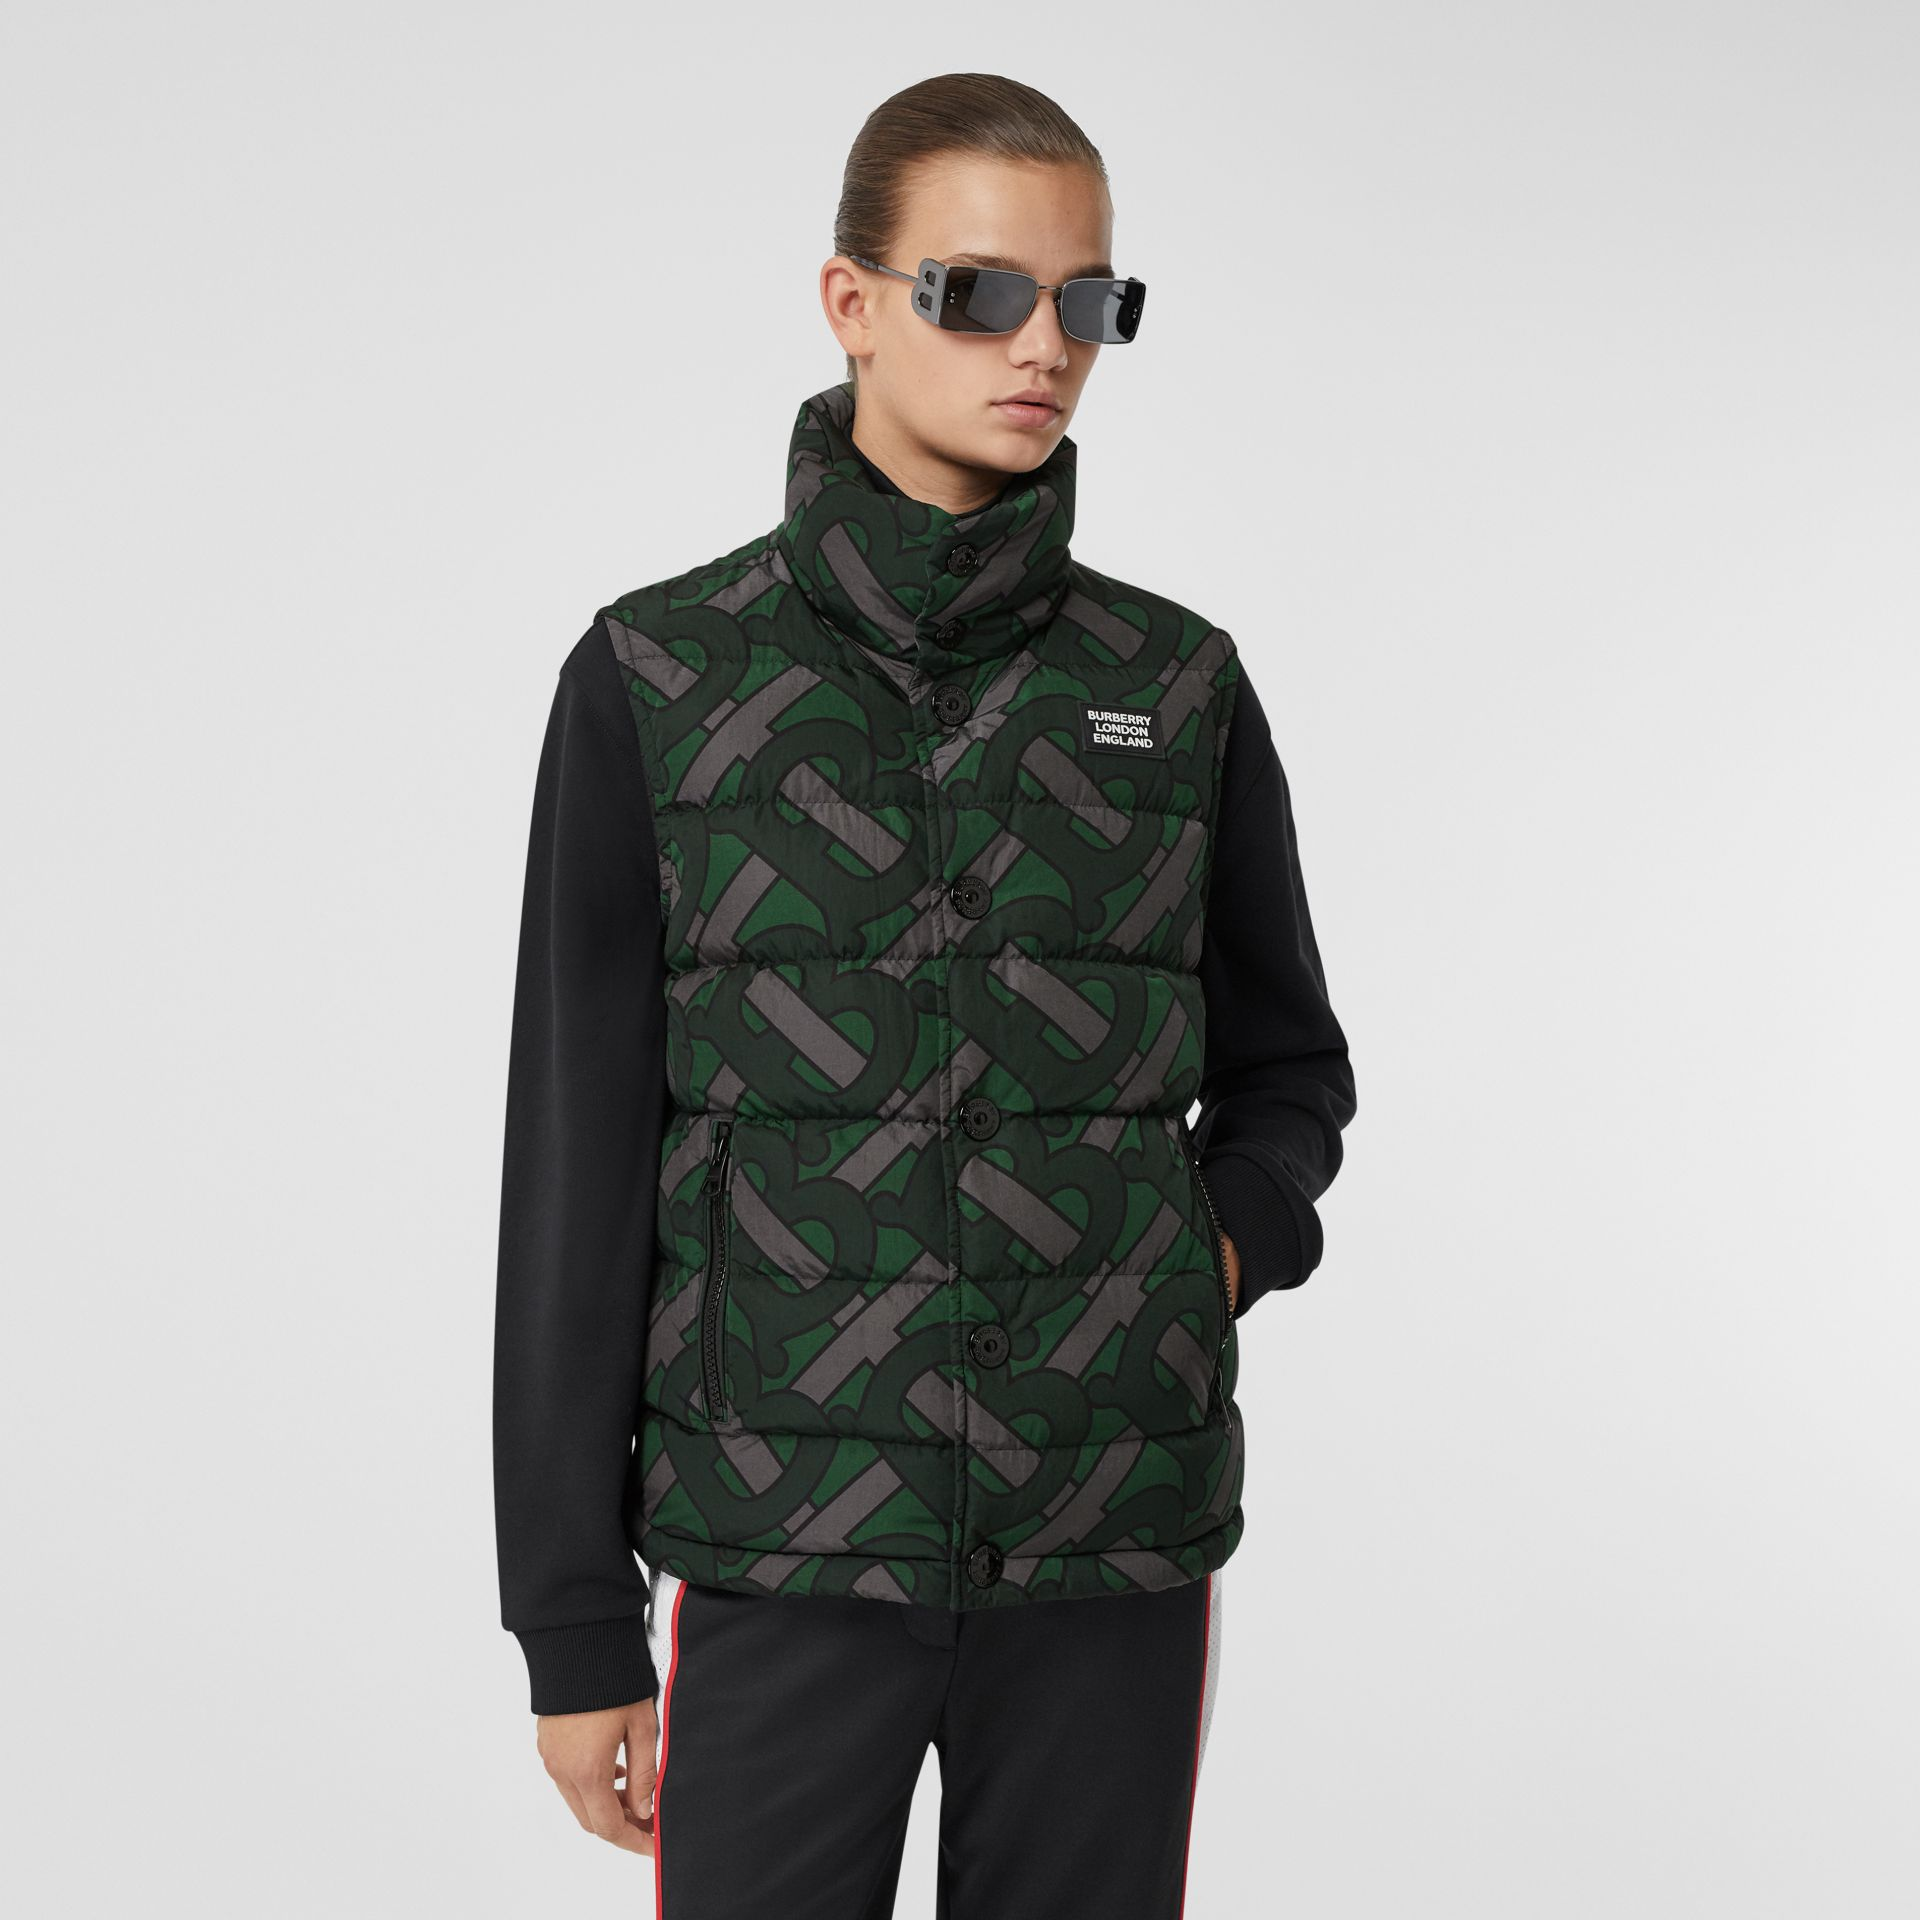 Monogram Print Puffer Gilet in Forest Green | Burberry - gallery image 5